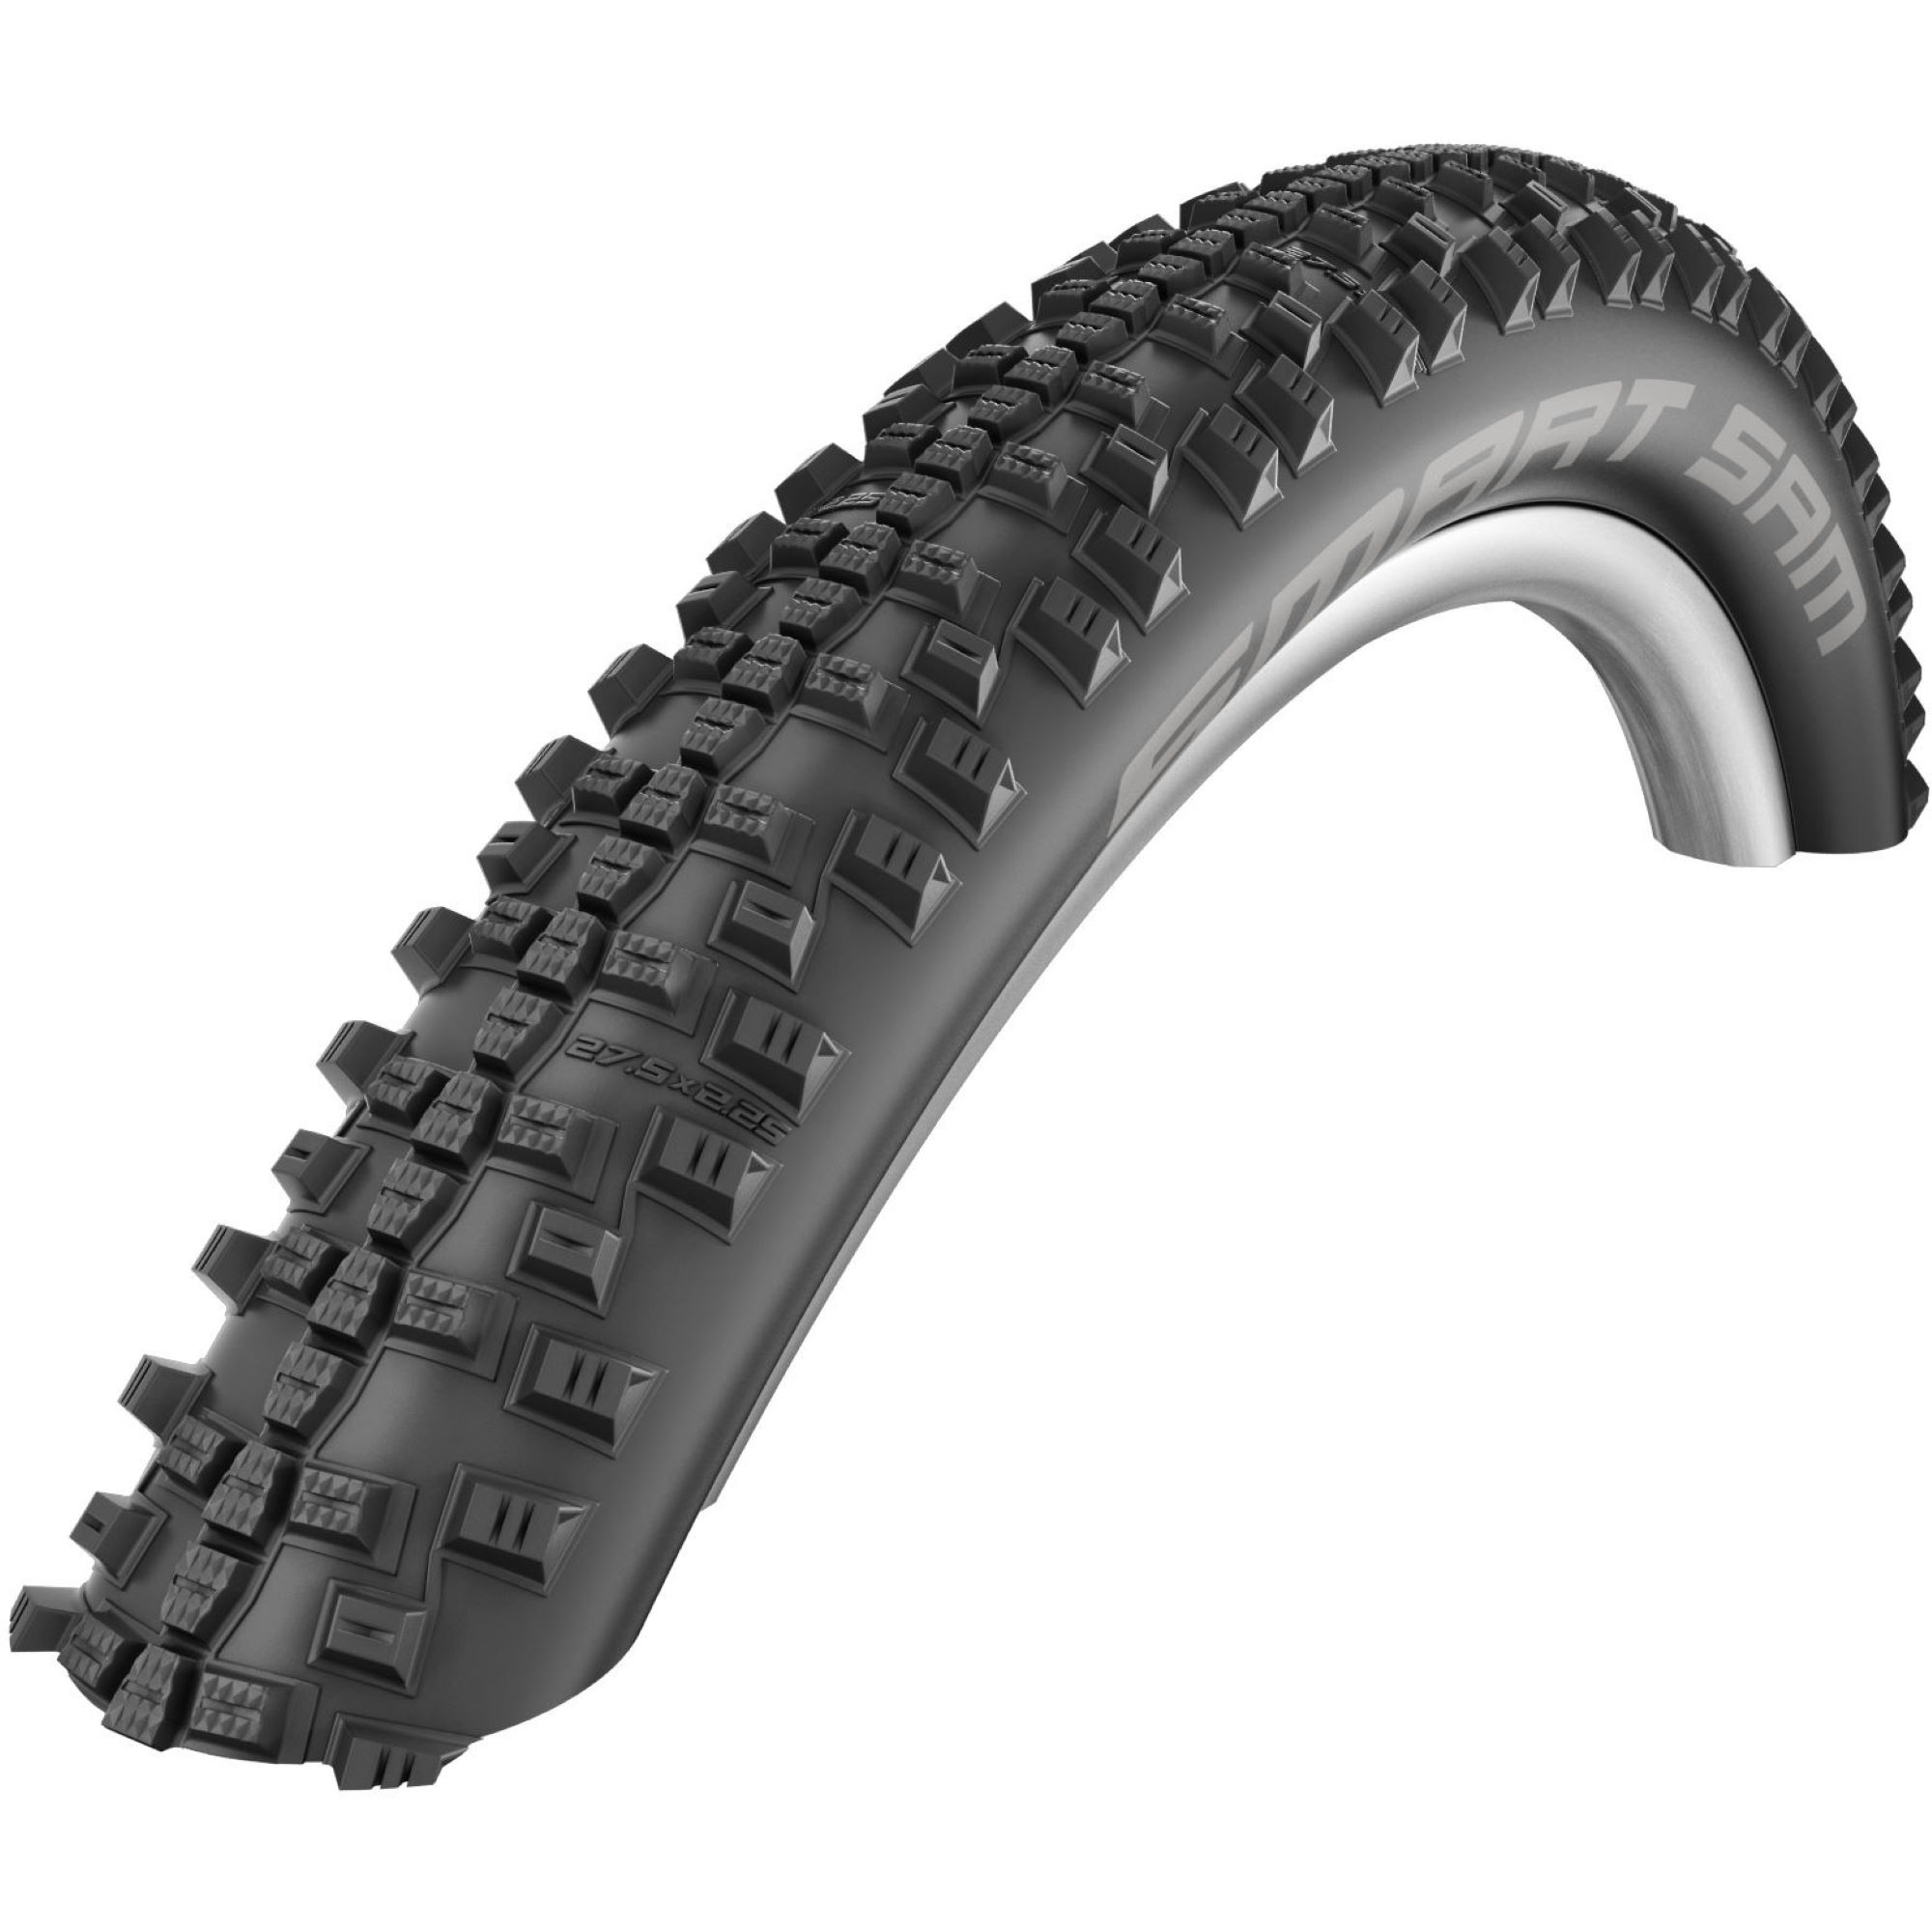 wiggle schwalbe smart sam performance mtb tyre mtb off. Black Bedroom Furniture Sets. Home Design Ideas